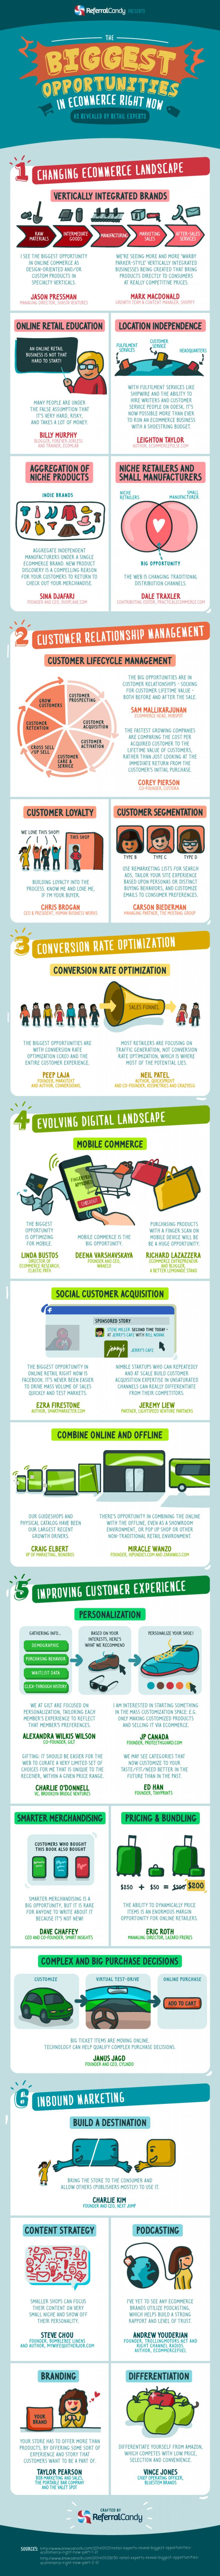 Infografica opportunità e-commerce